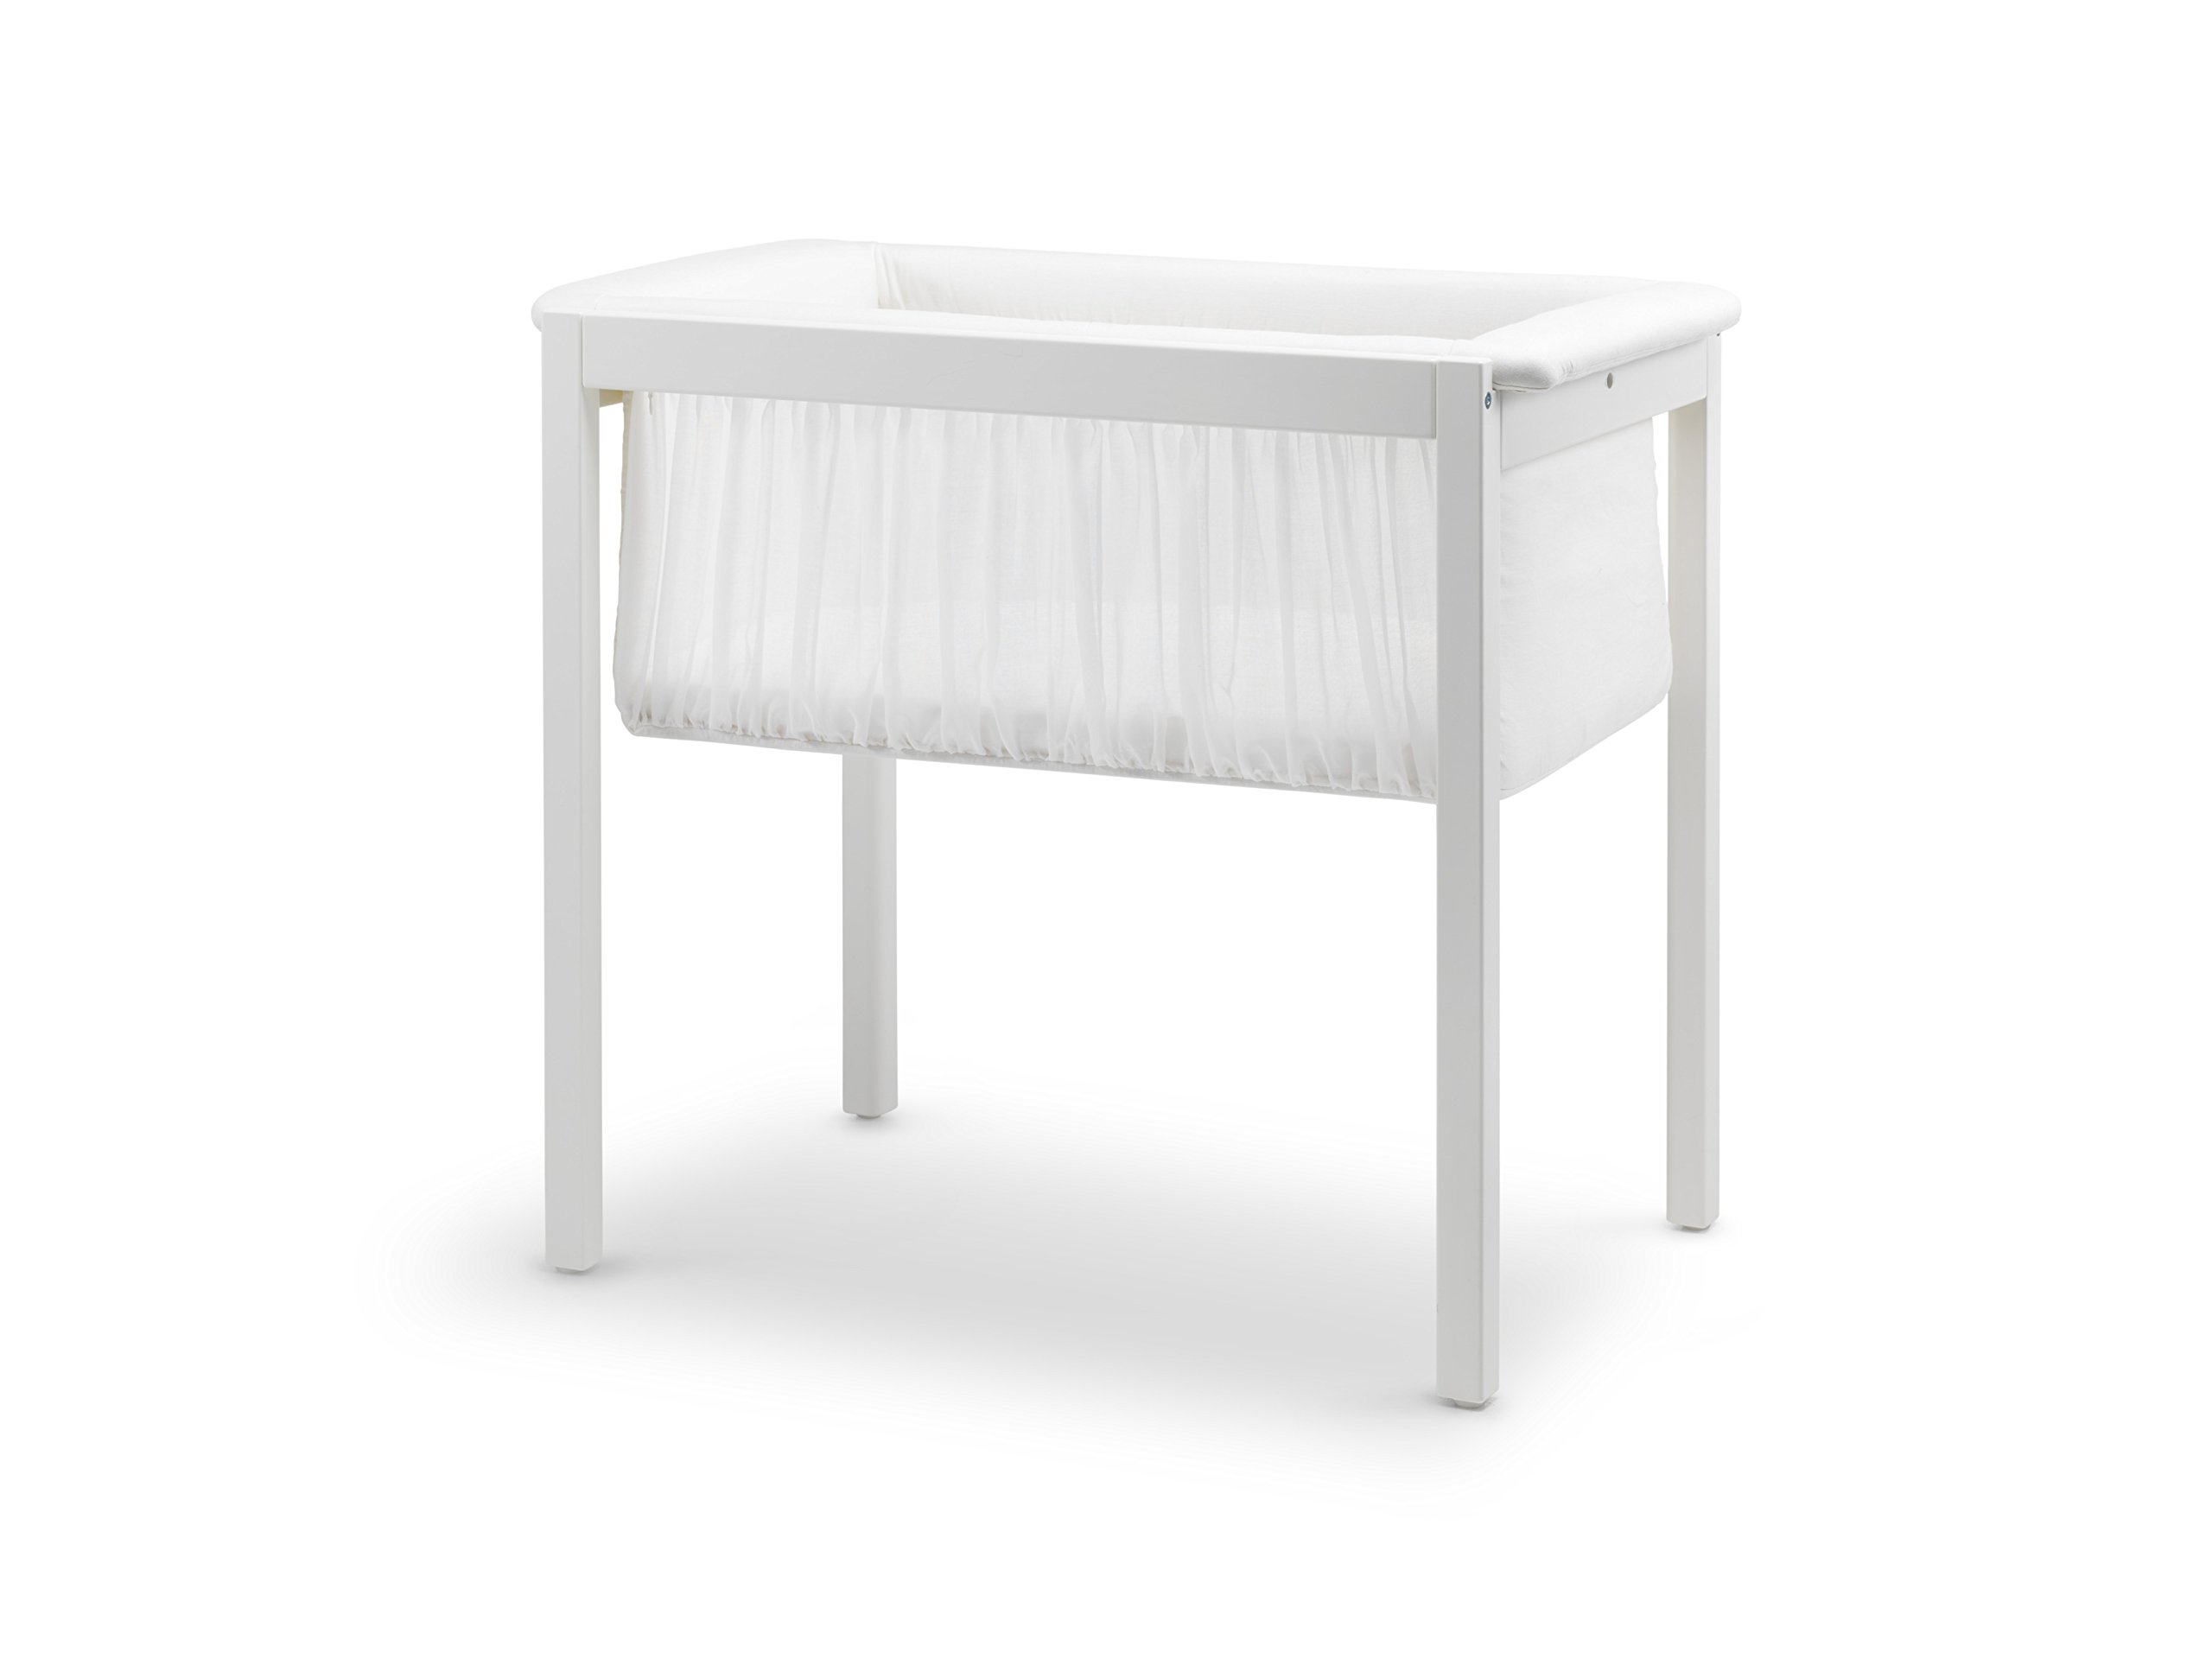 Stokke Home Cradle, White by Stokke